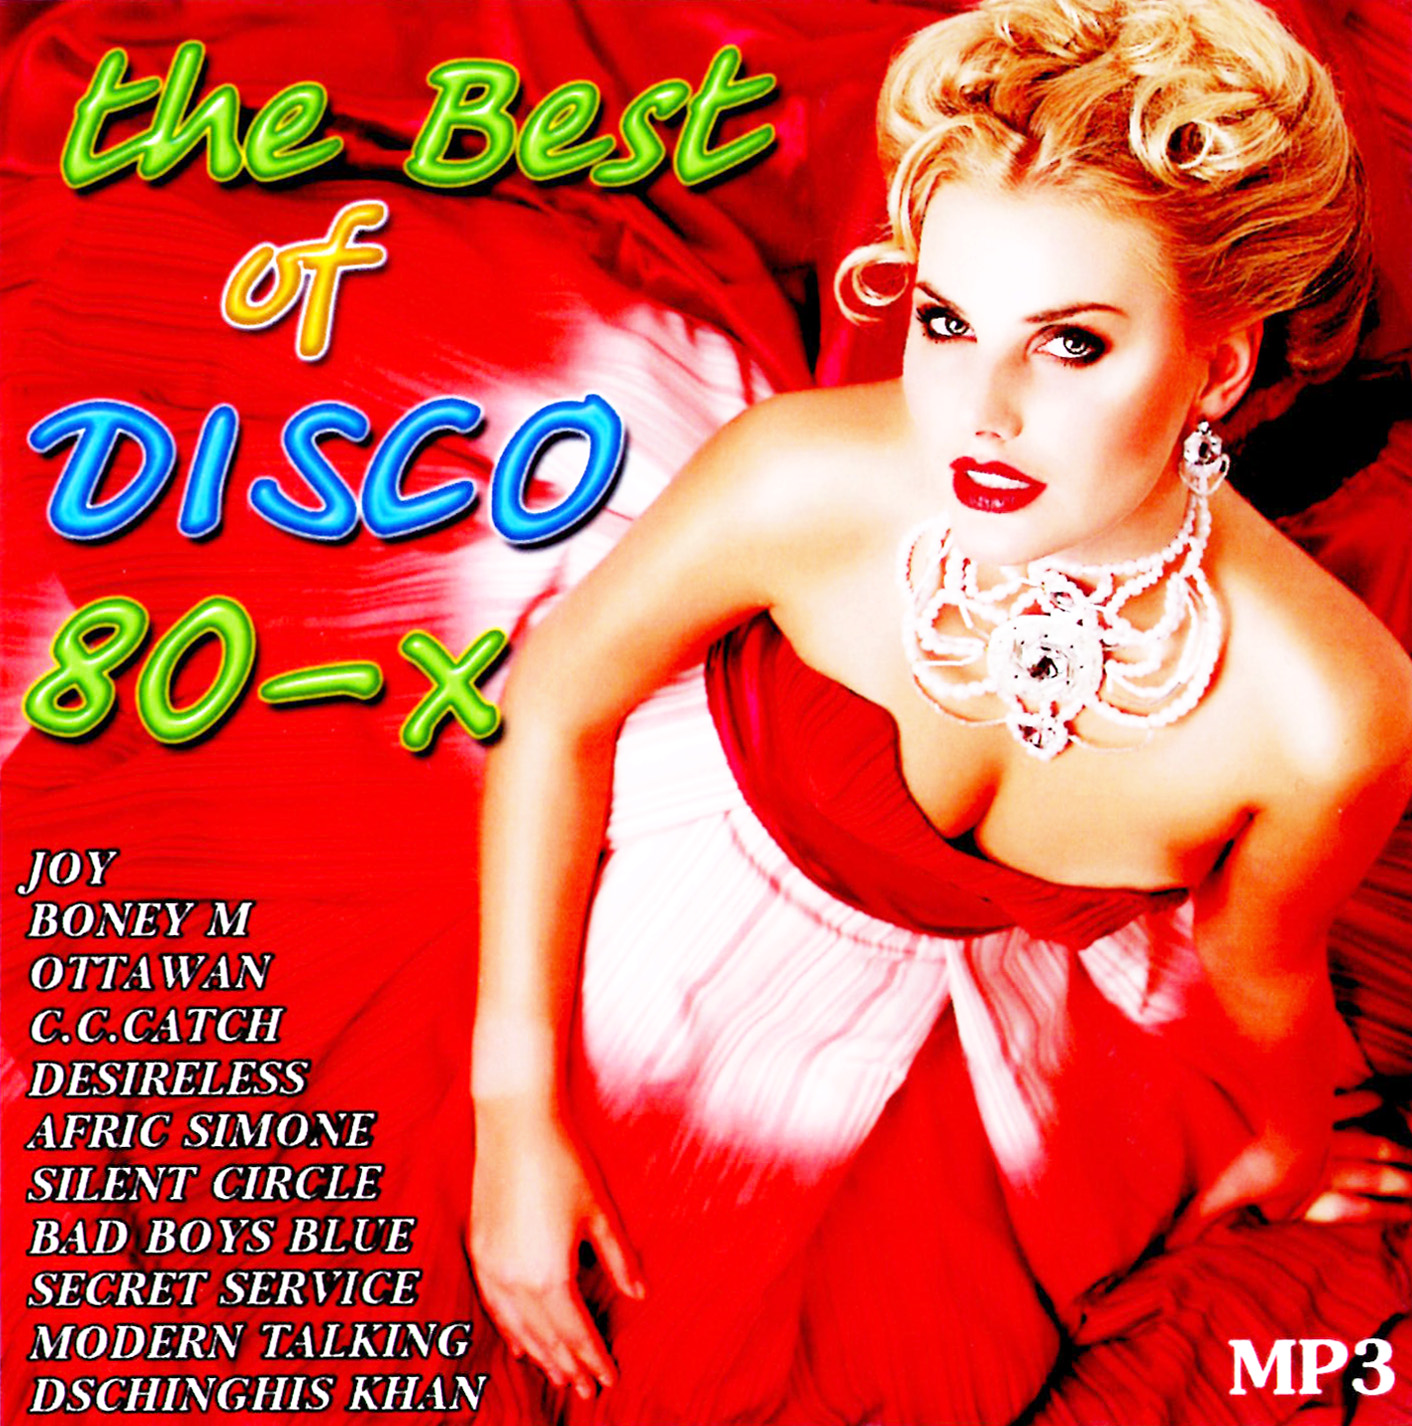 The Best of Disco 80-x [mp3]